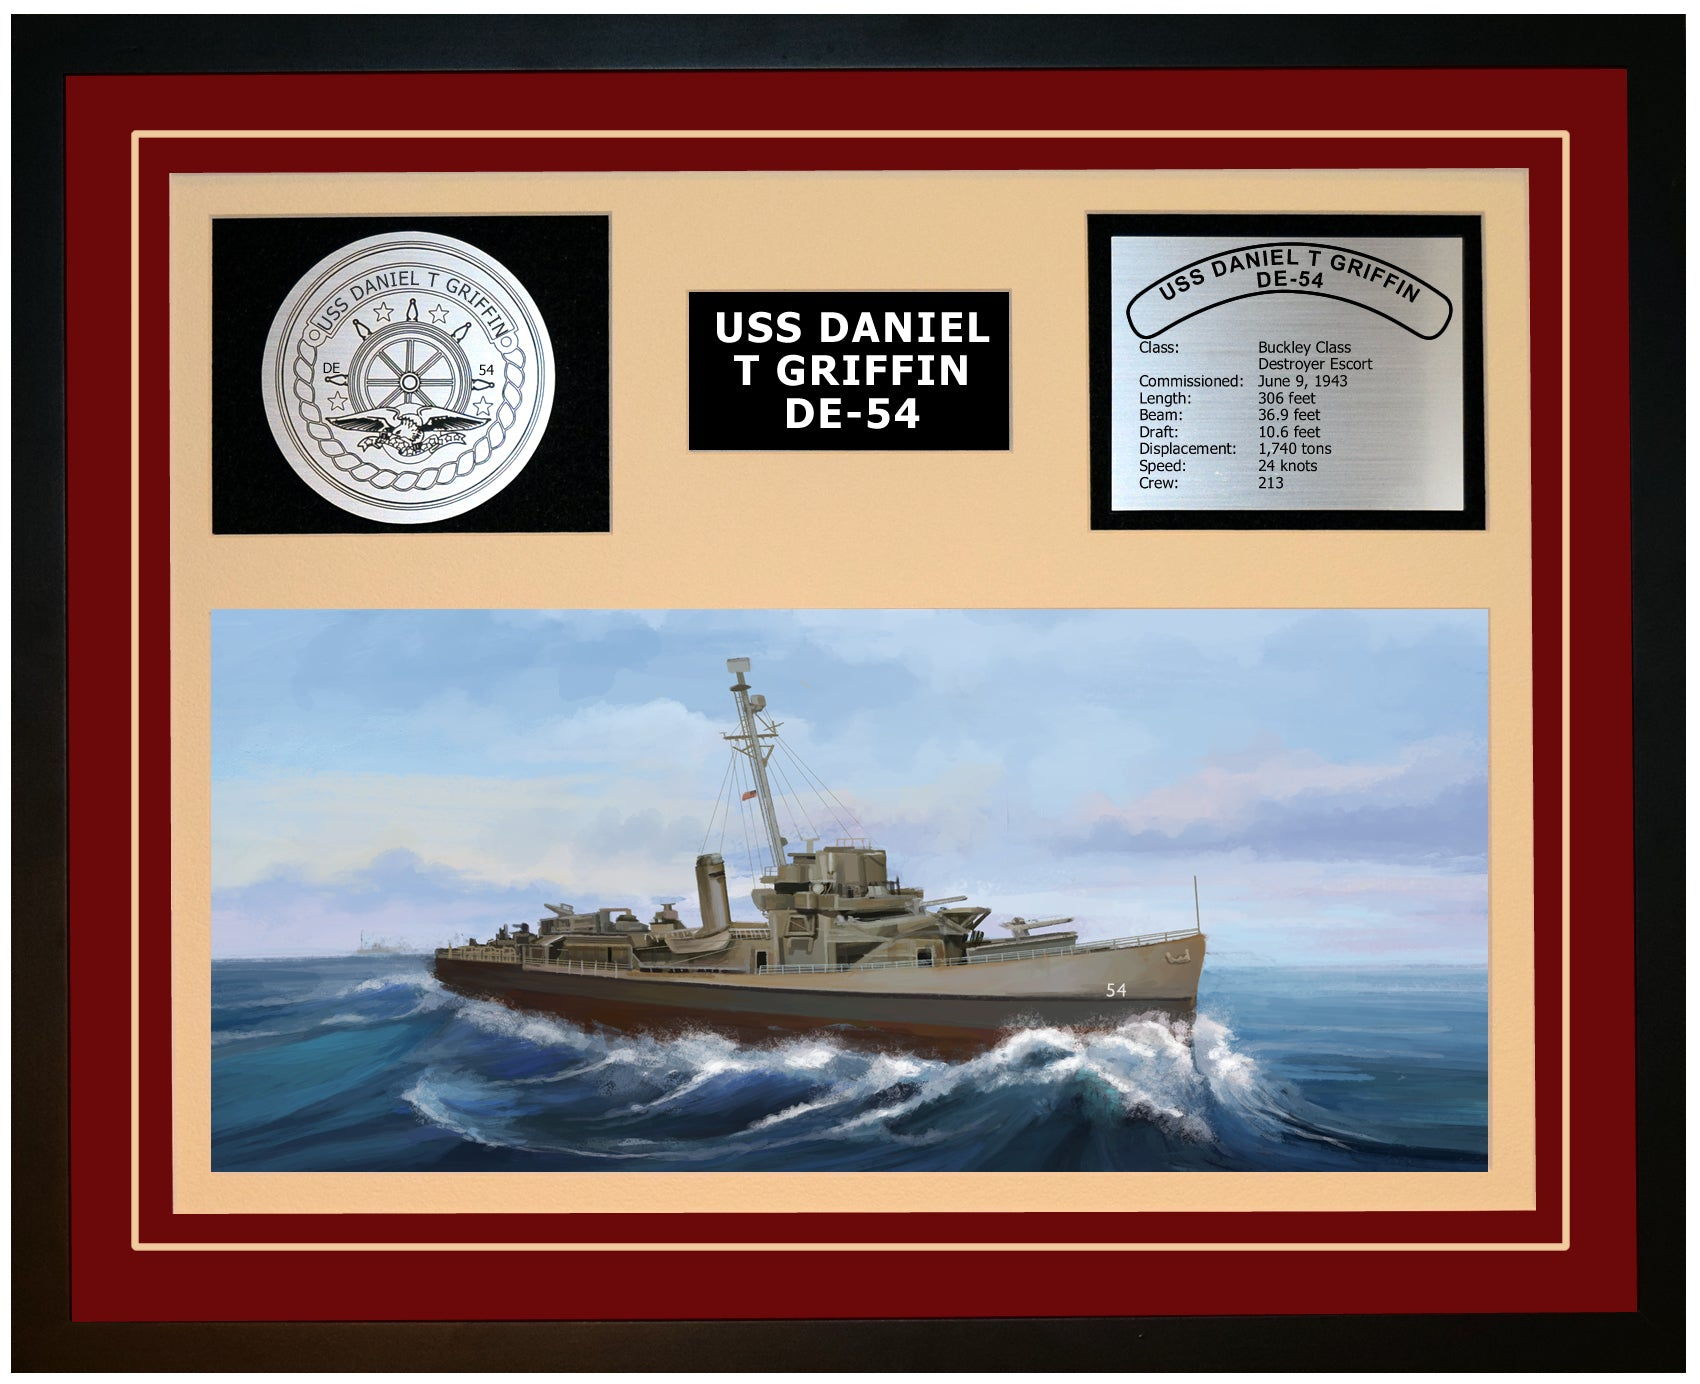 USS DANIEL T GRIFFIN DE-54 Framed Navy Ship Display Burgundy